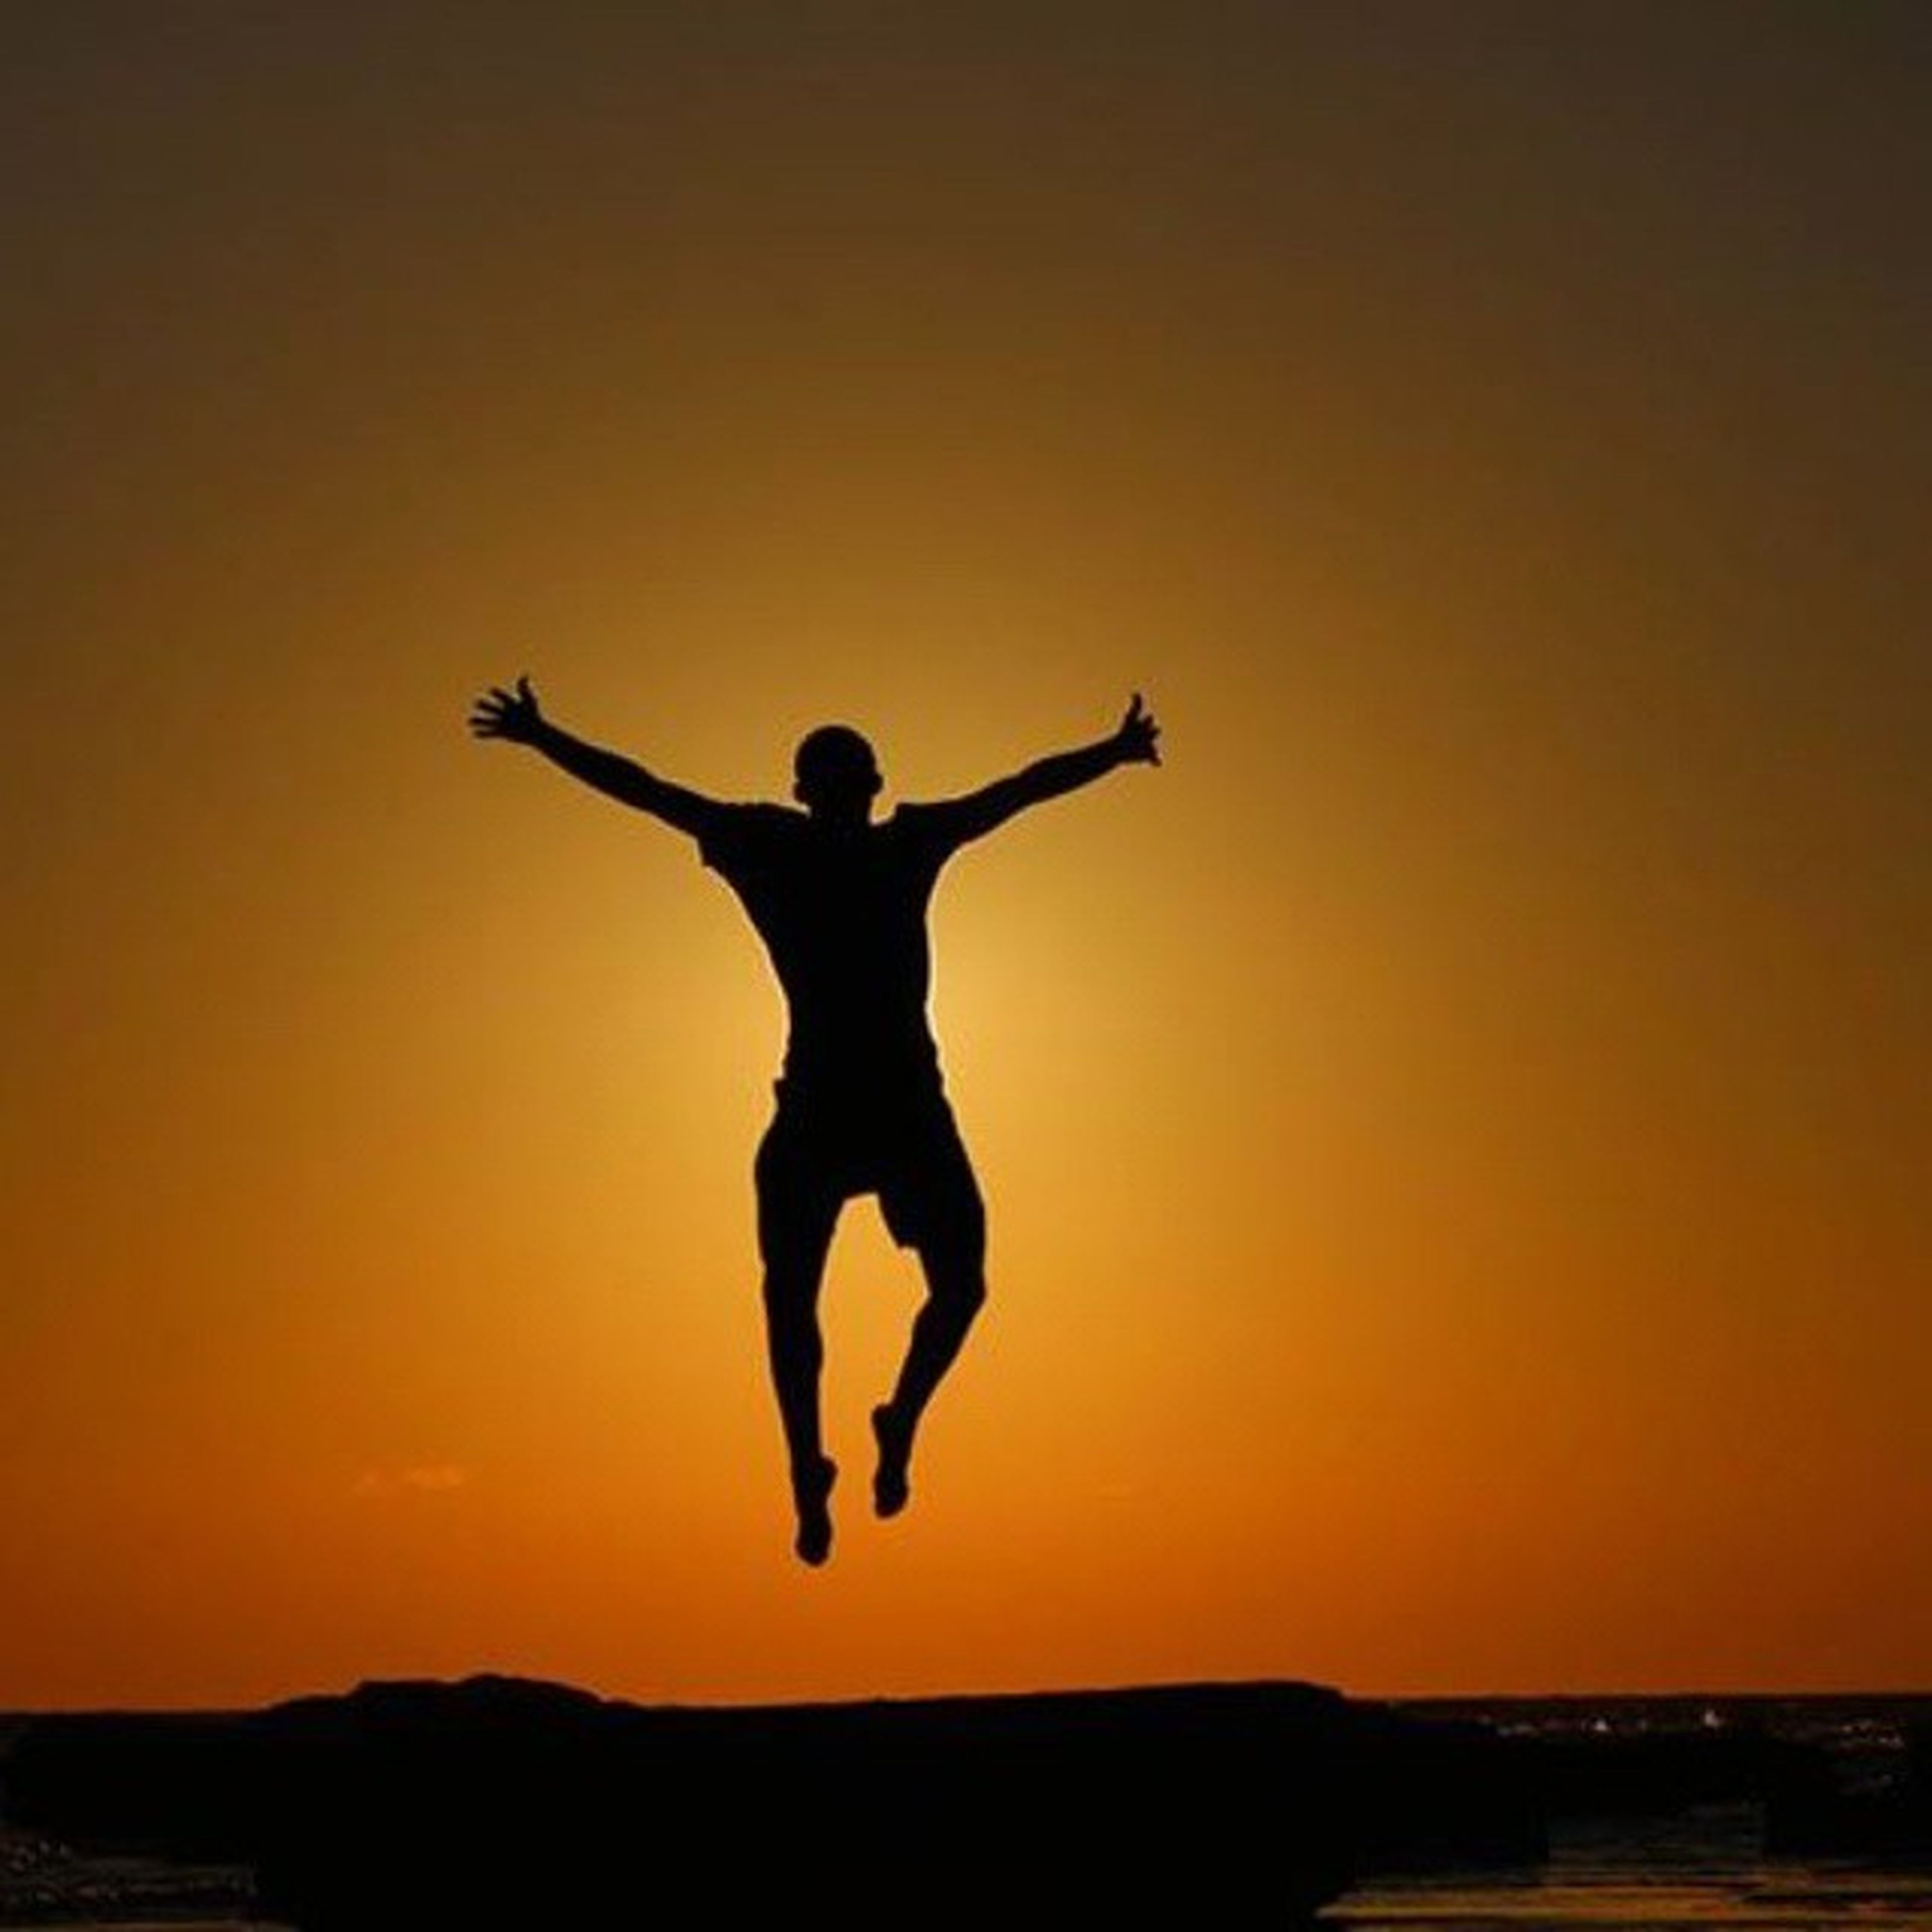 sunset, full length, silhouette, arms outstretched, leisure activity, lifestyles, orange color, mid-air, standing, jumping, arms raised, clear sky, copy space, freedom, sky, carefree, tranquil scene, nature